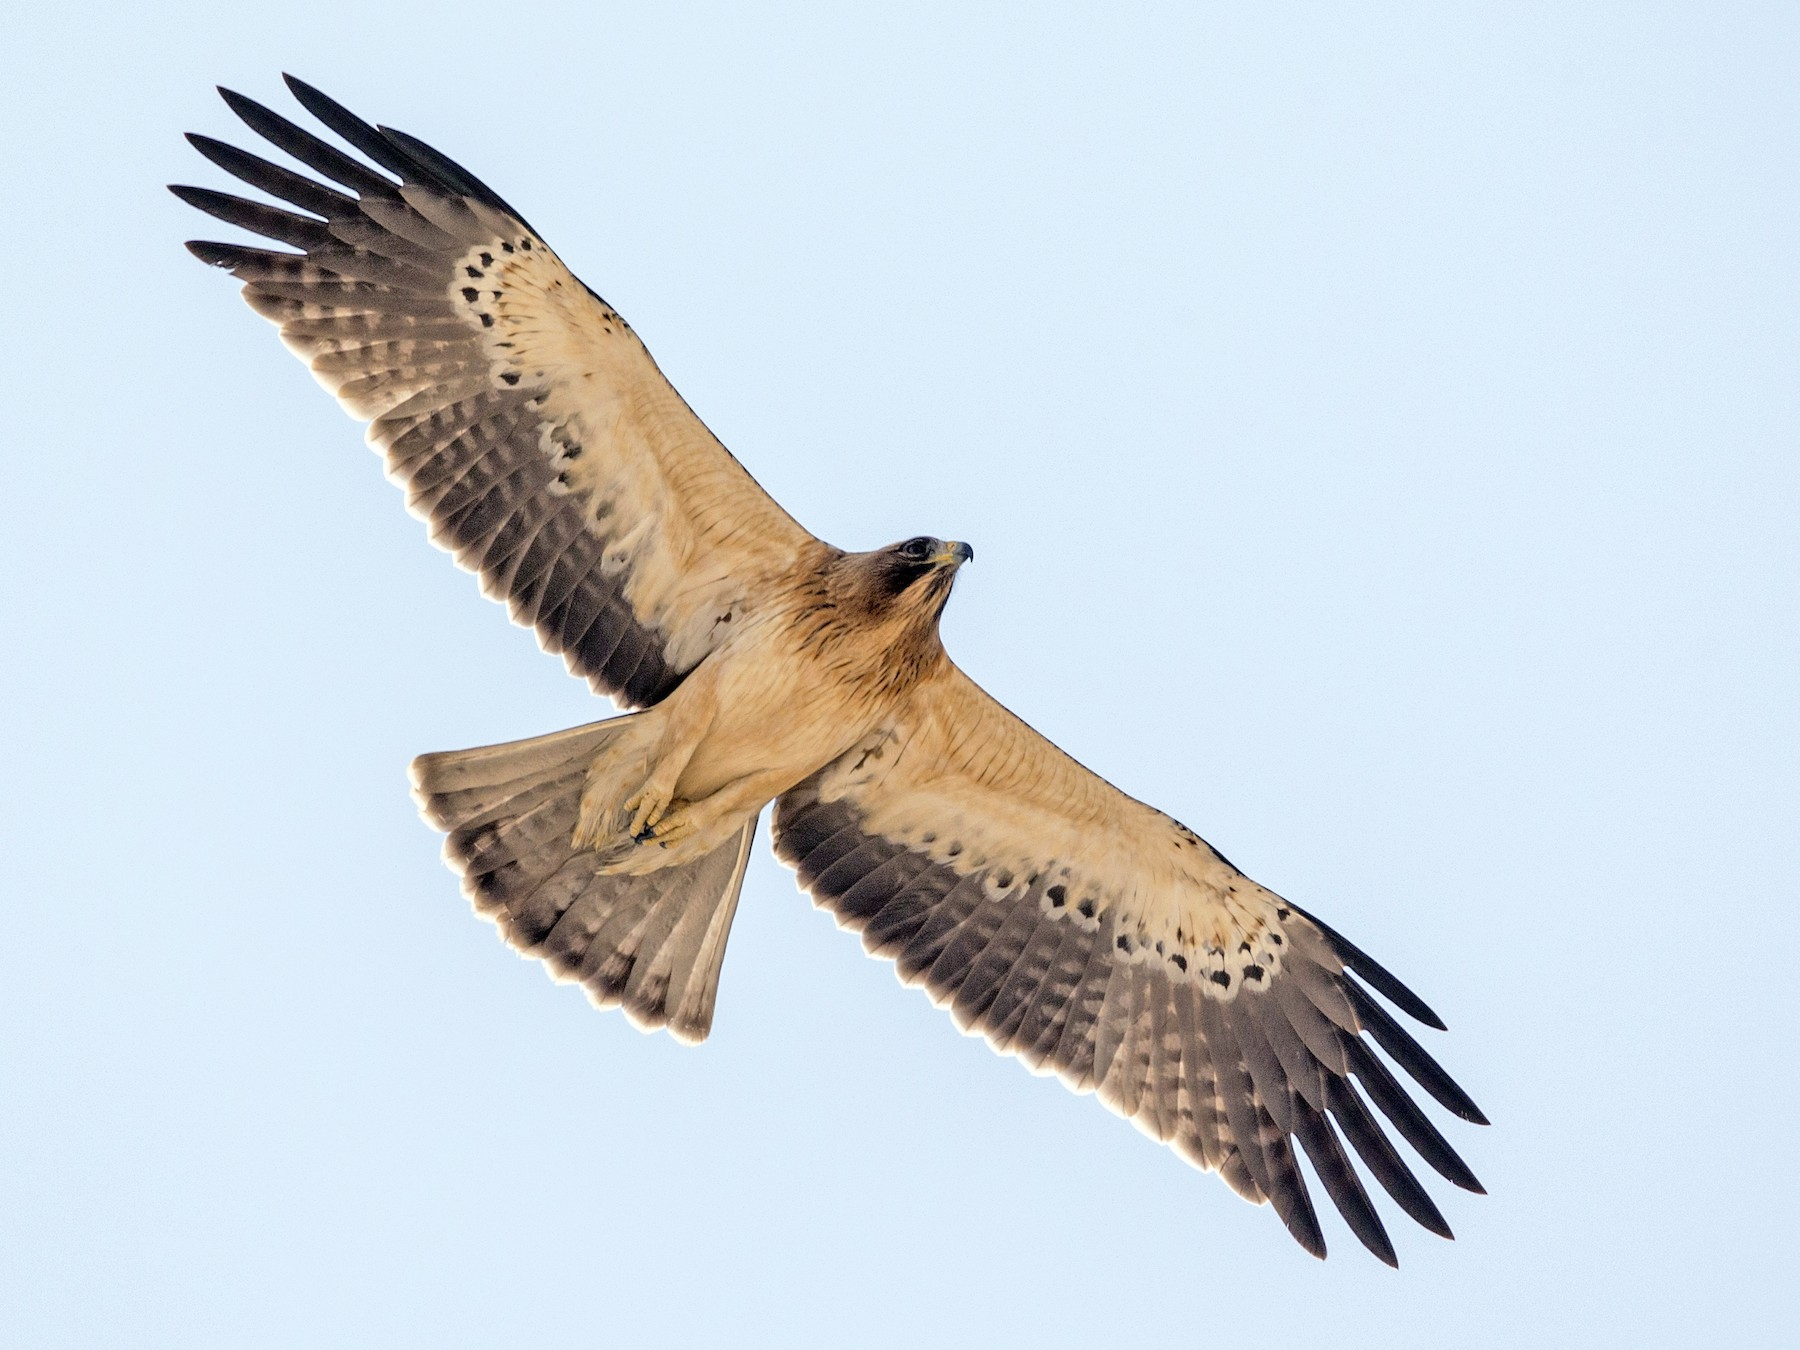 Booted Eagle - Omar alshaheen